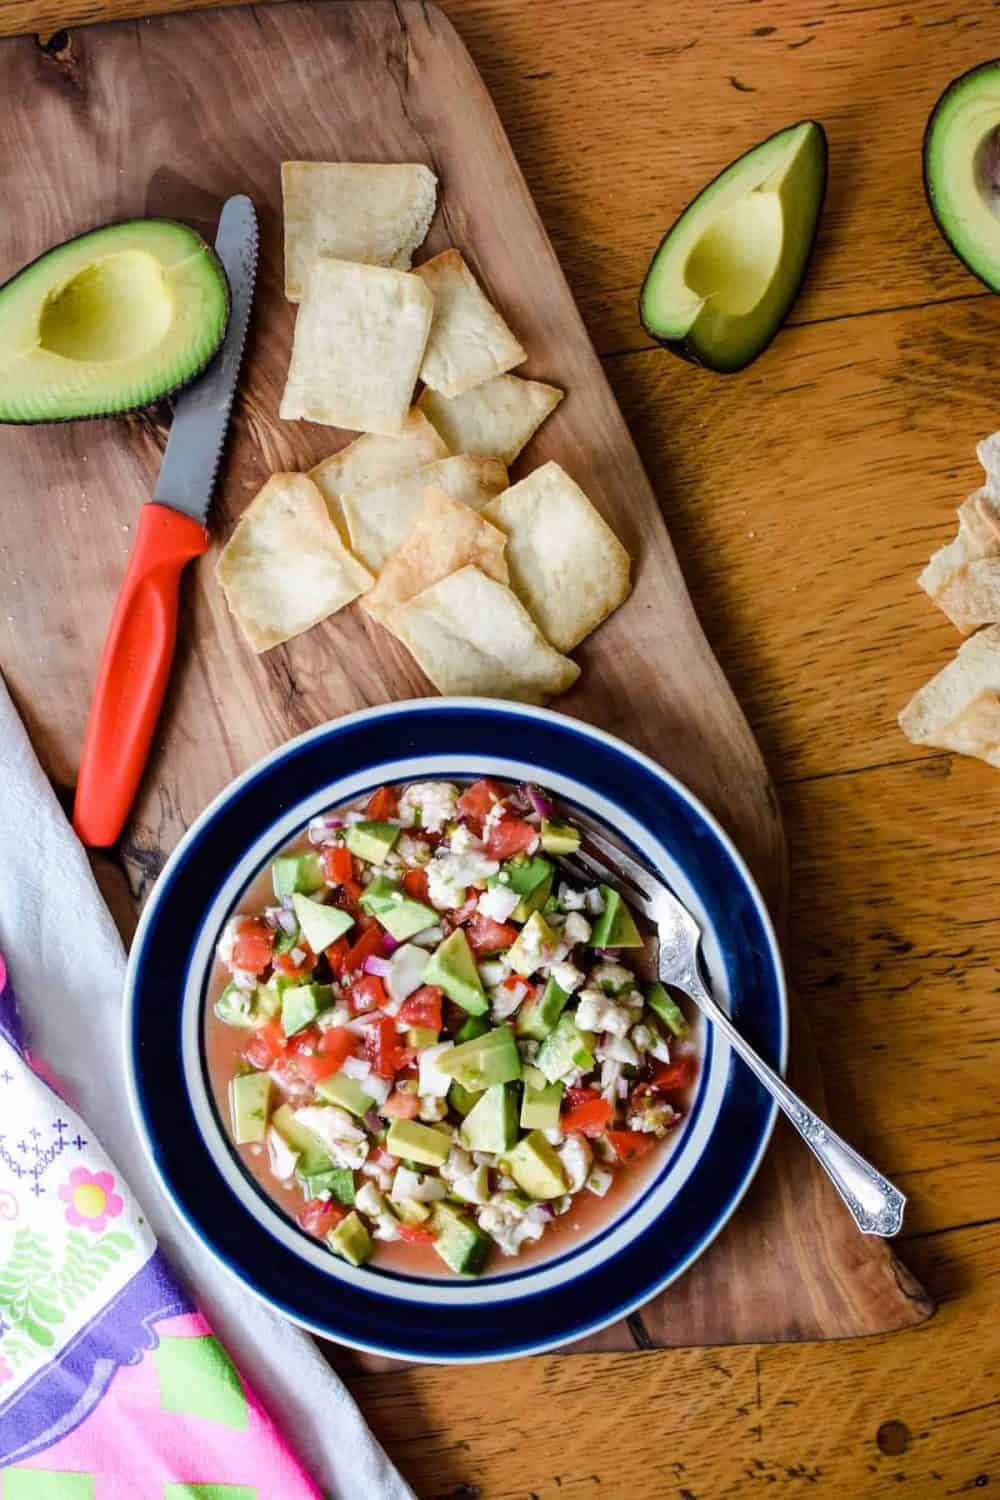 Vegan Ceviche with Avocado and Lime